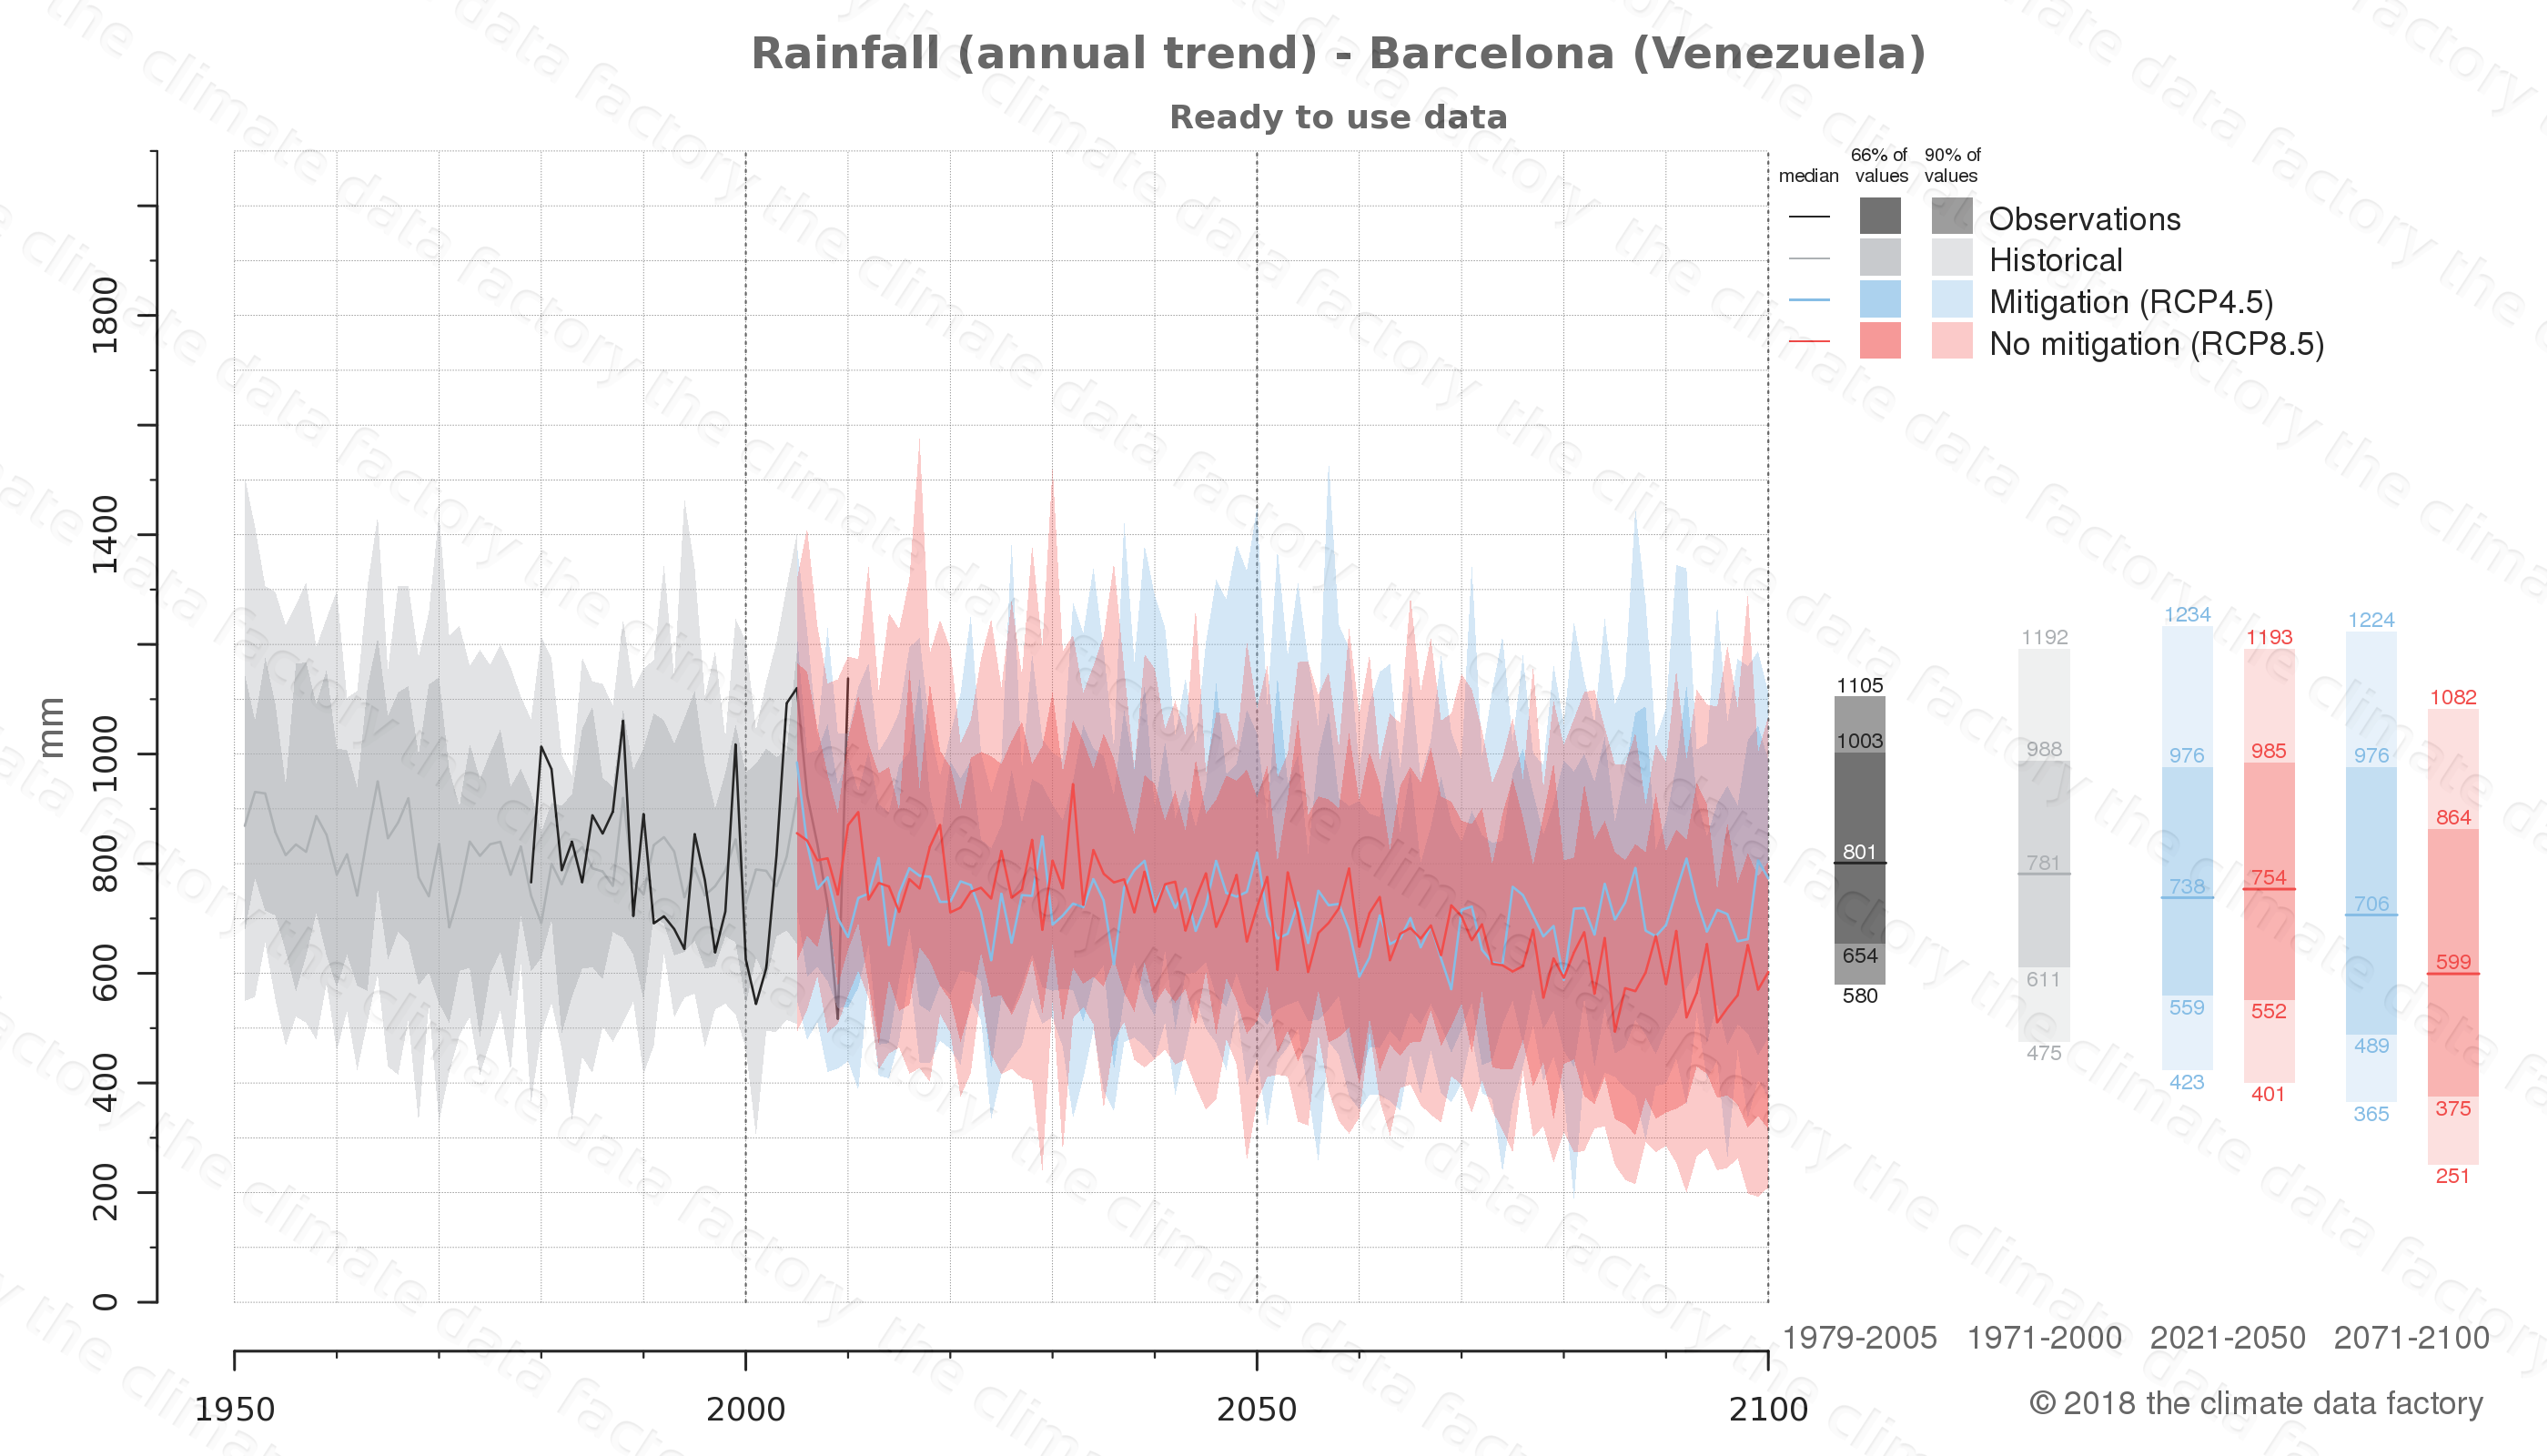 climate change data policy adaptation climate graph city data rainfall barcelona venezuela